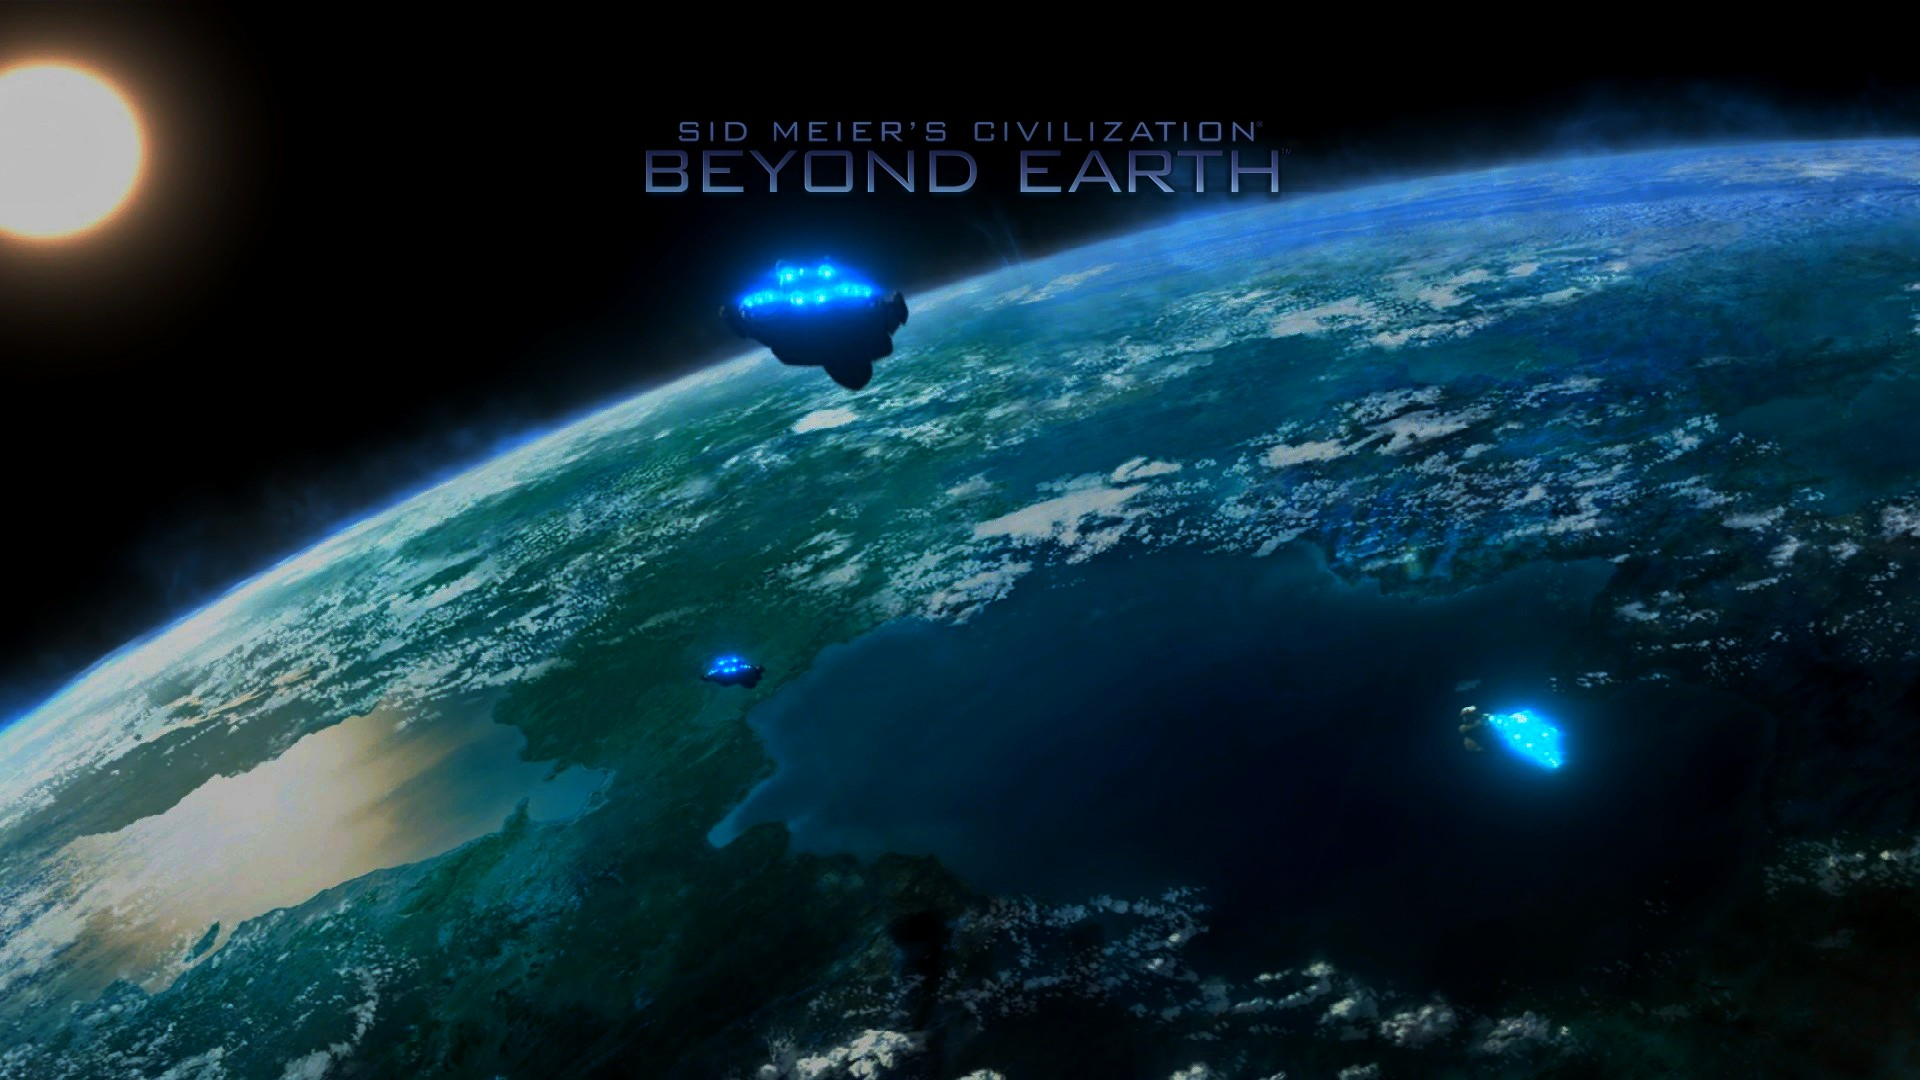 Civilization Beyond Earth wallpapers 76 Wallpapers HD 1920x1080